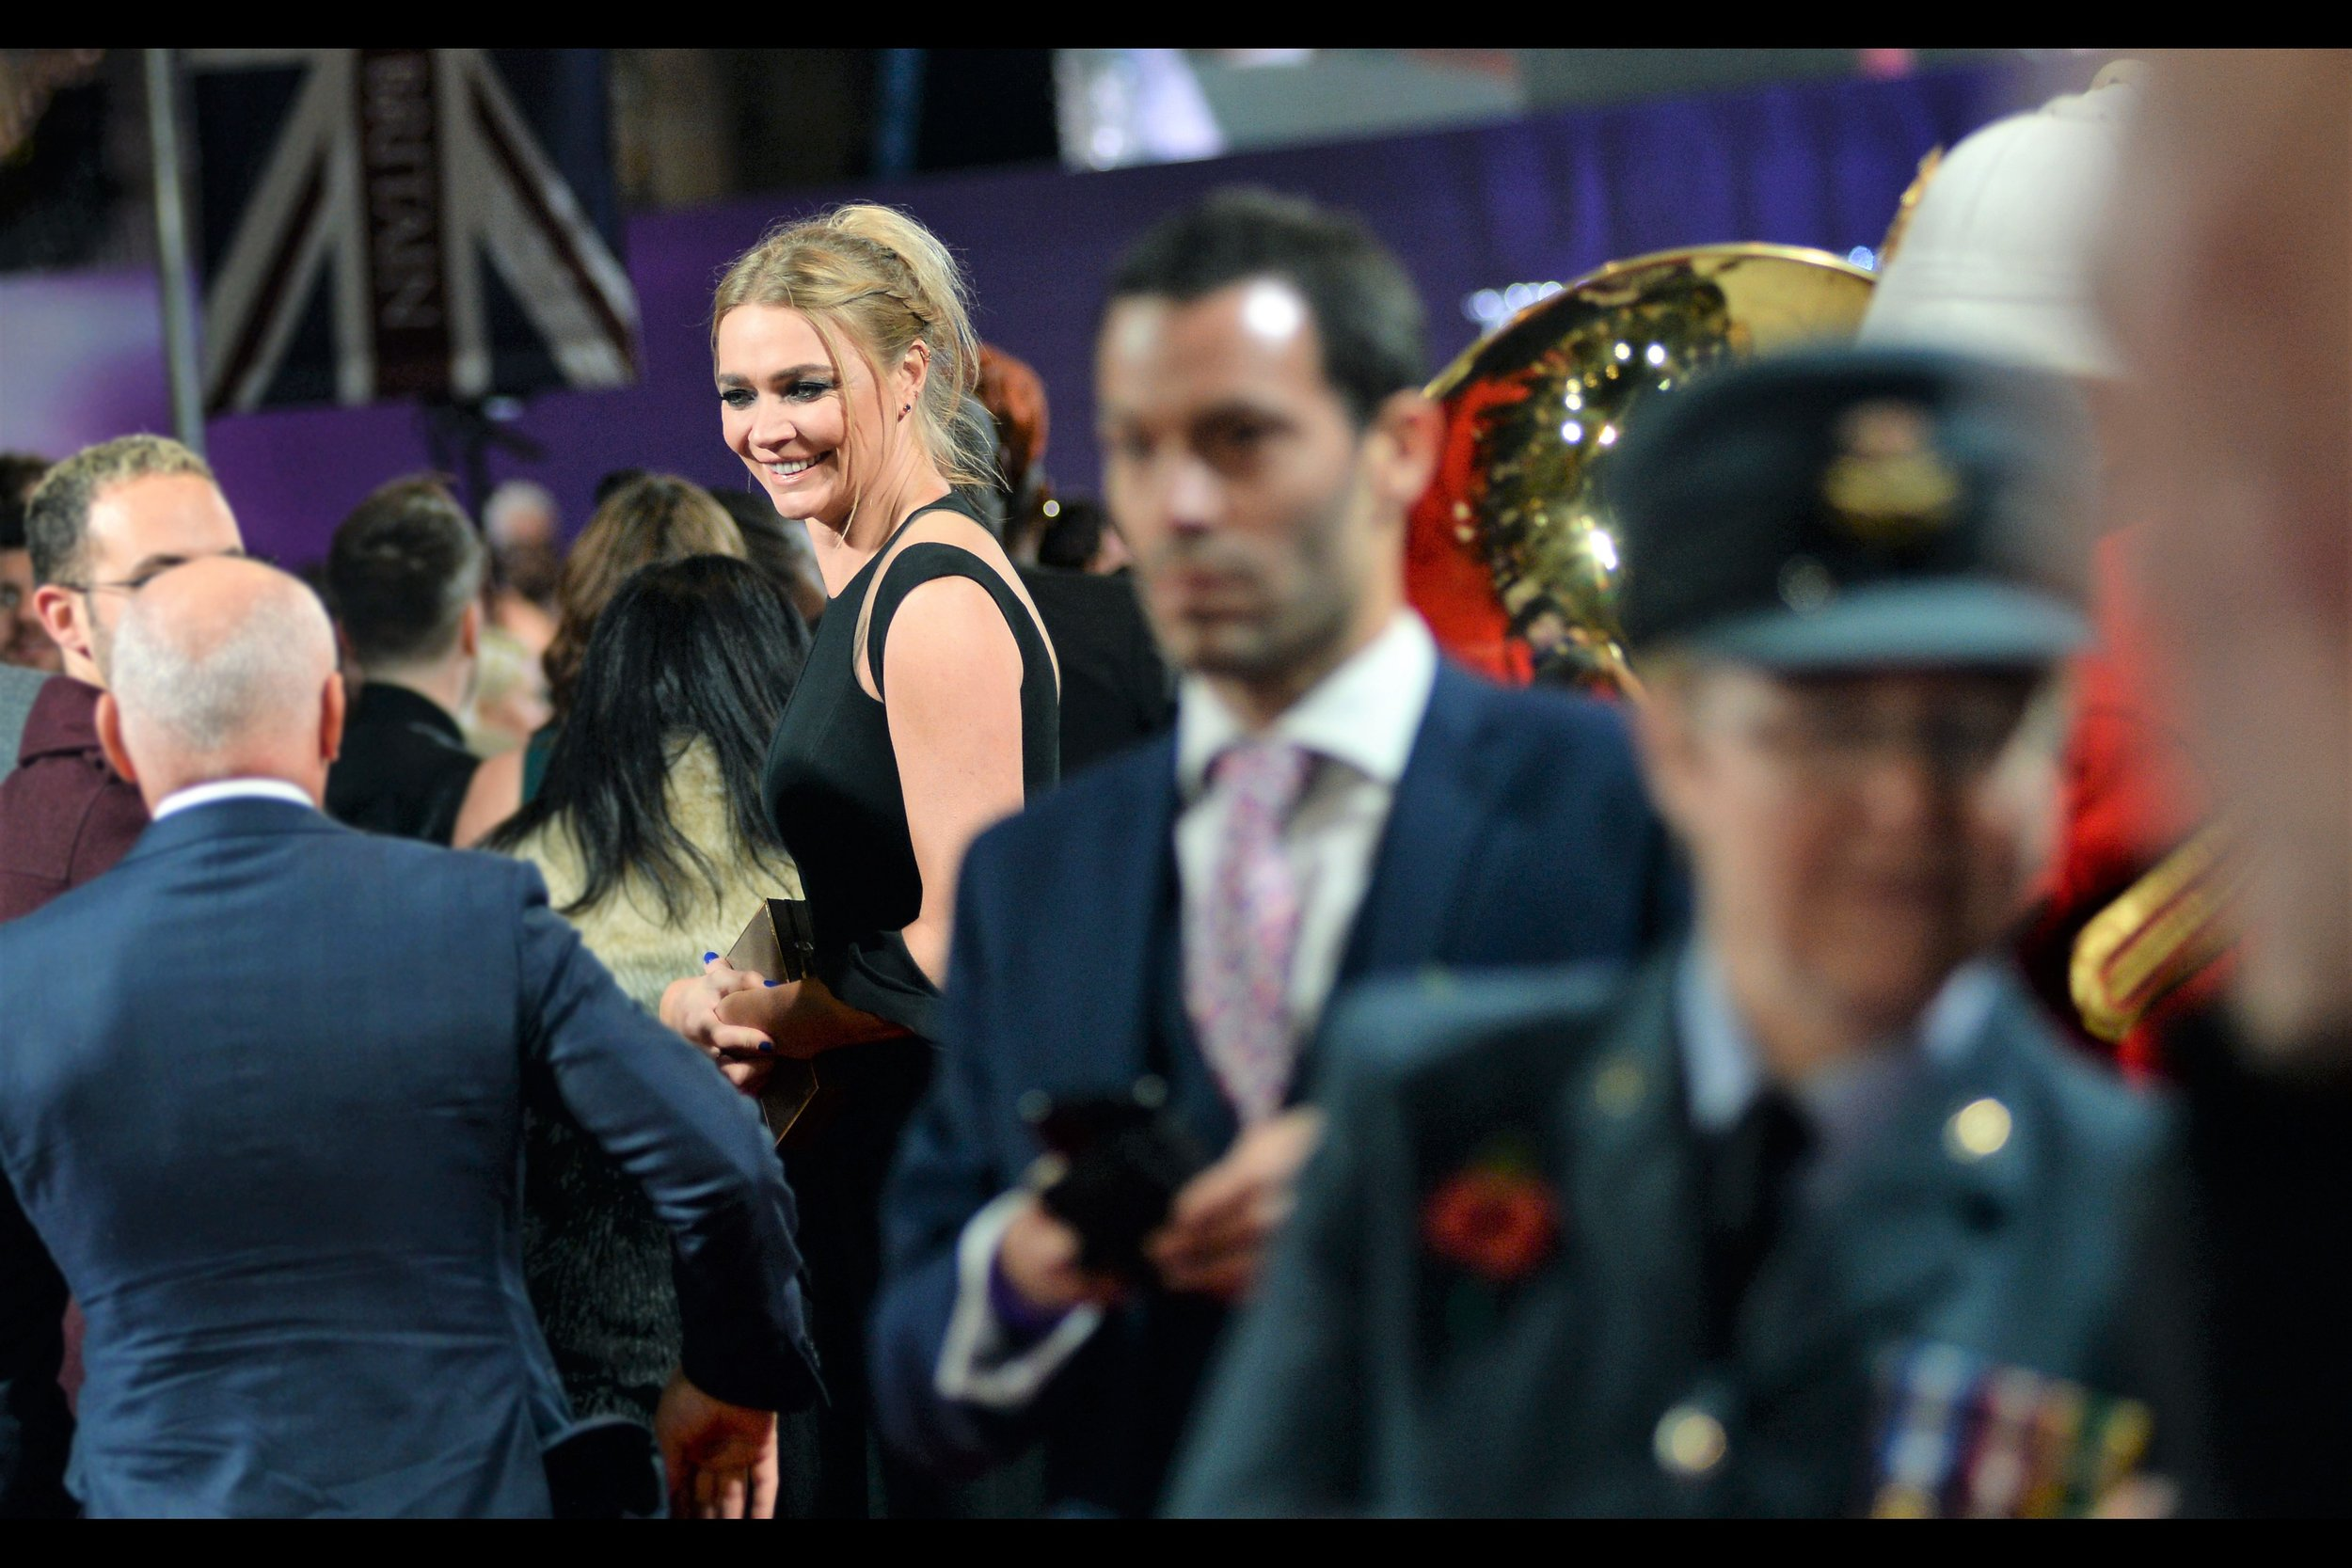 I think this is model/actress/race-car driver Jodie Kidd? (My knowledge of old episodes of Top Gear might exceed mine for Proud British people…)